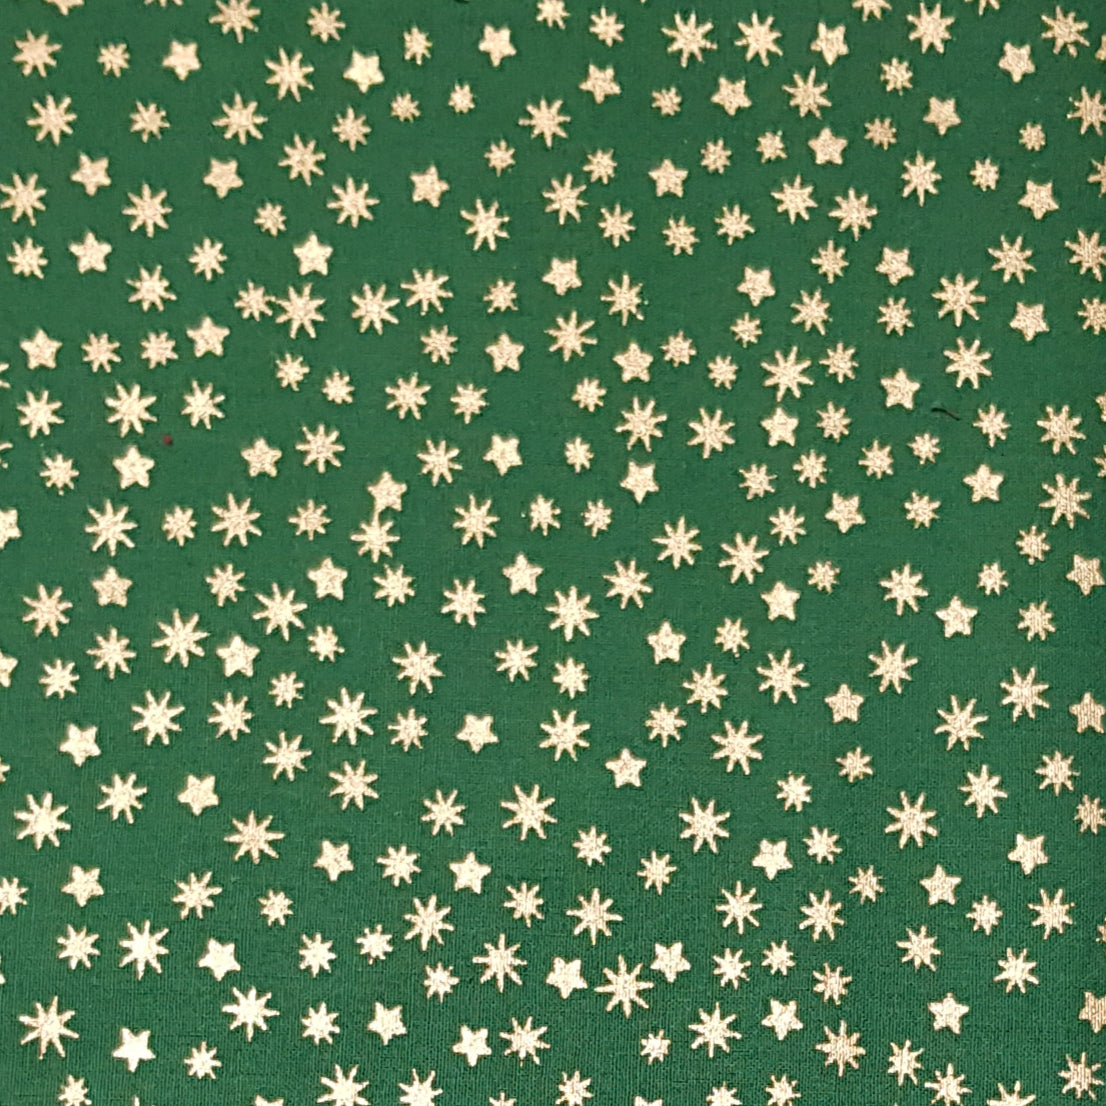 Christmas tiny star fabric green & gold 100 % Cotton sold per half metre 137cm wide